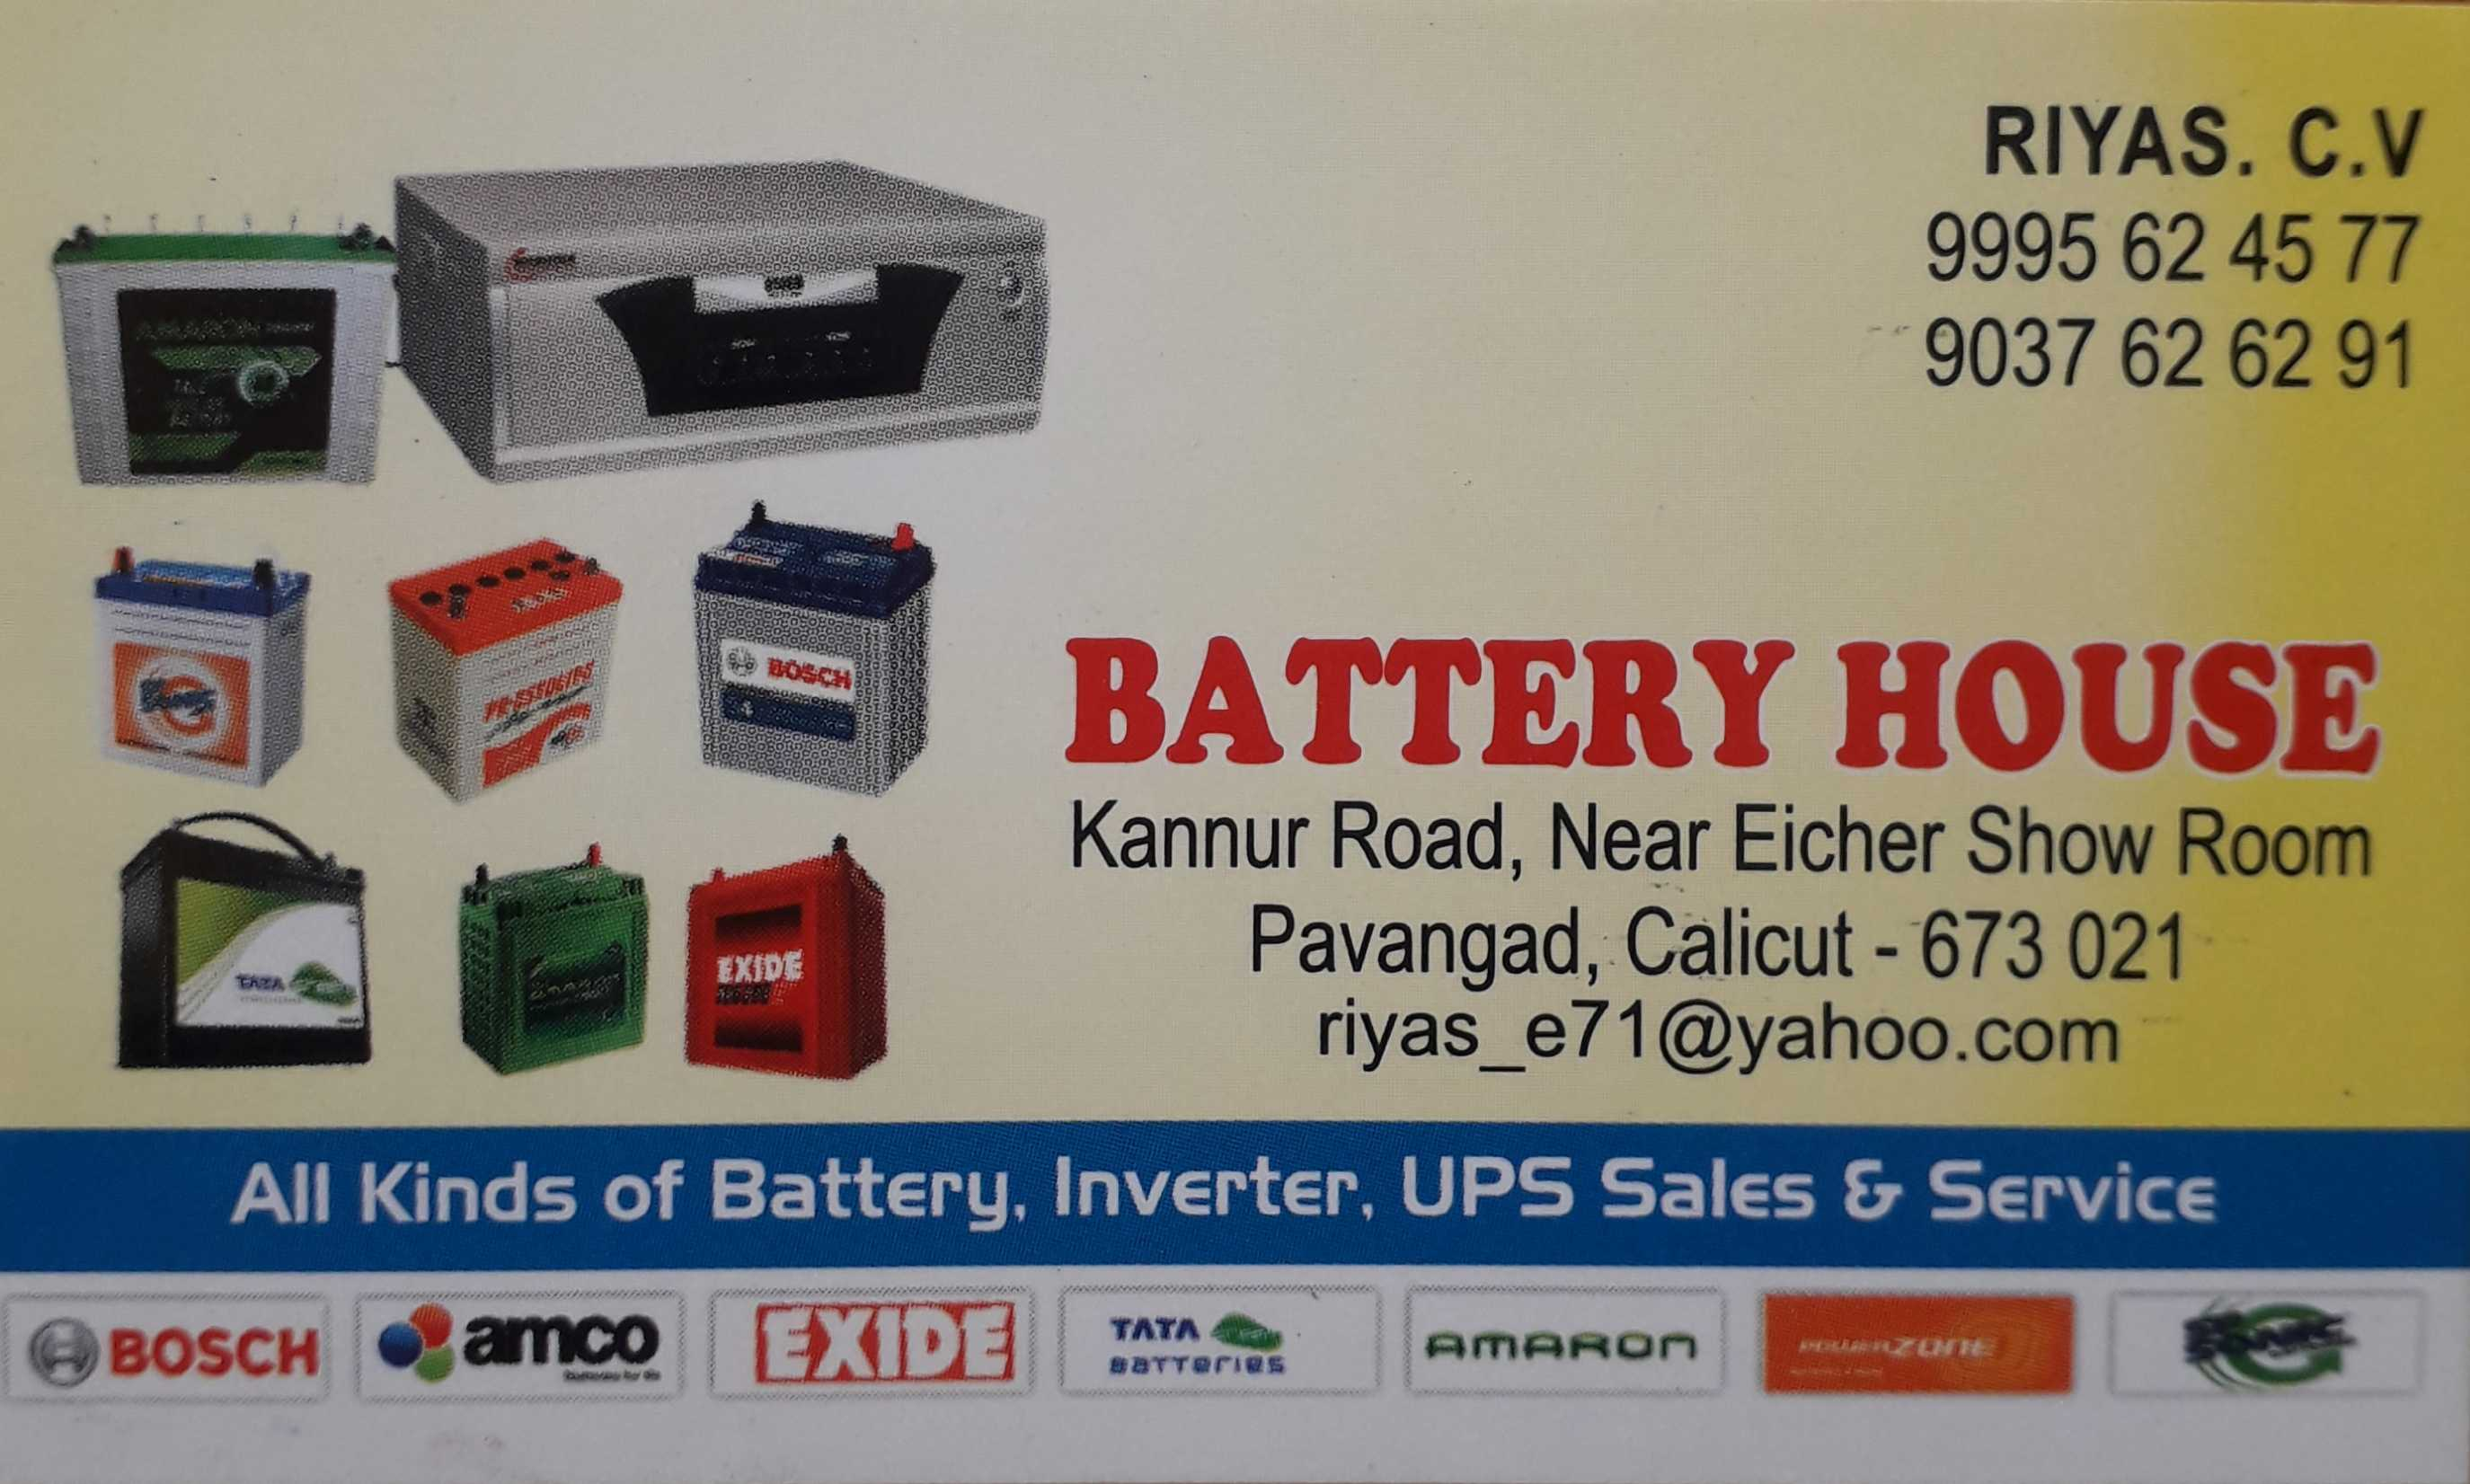 BATTERY HOUSE, BATTERY & UPS,  service in Pavangad, Kozhikode